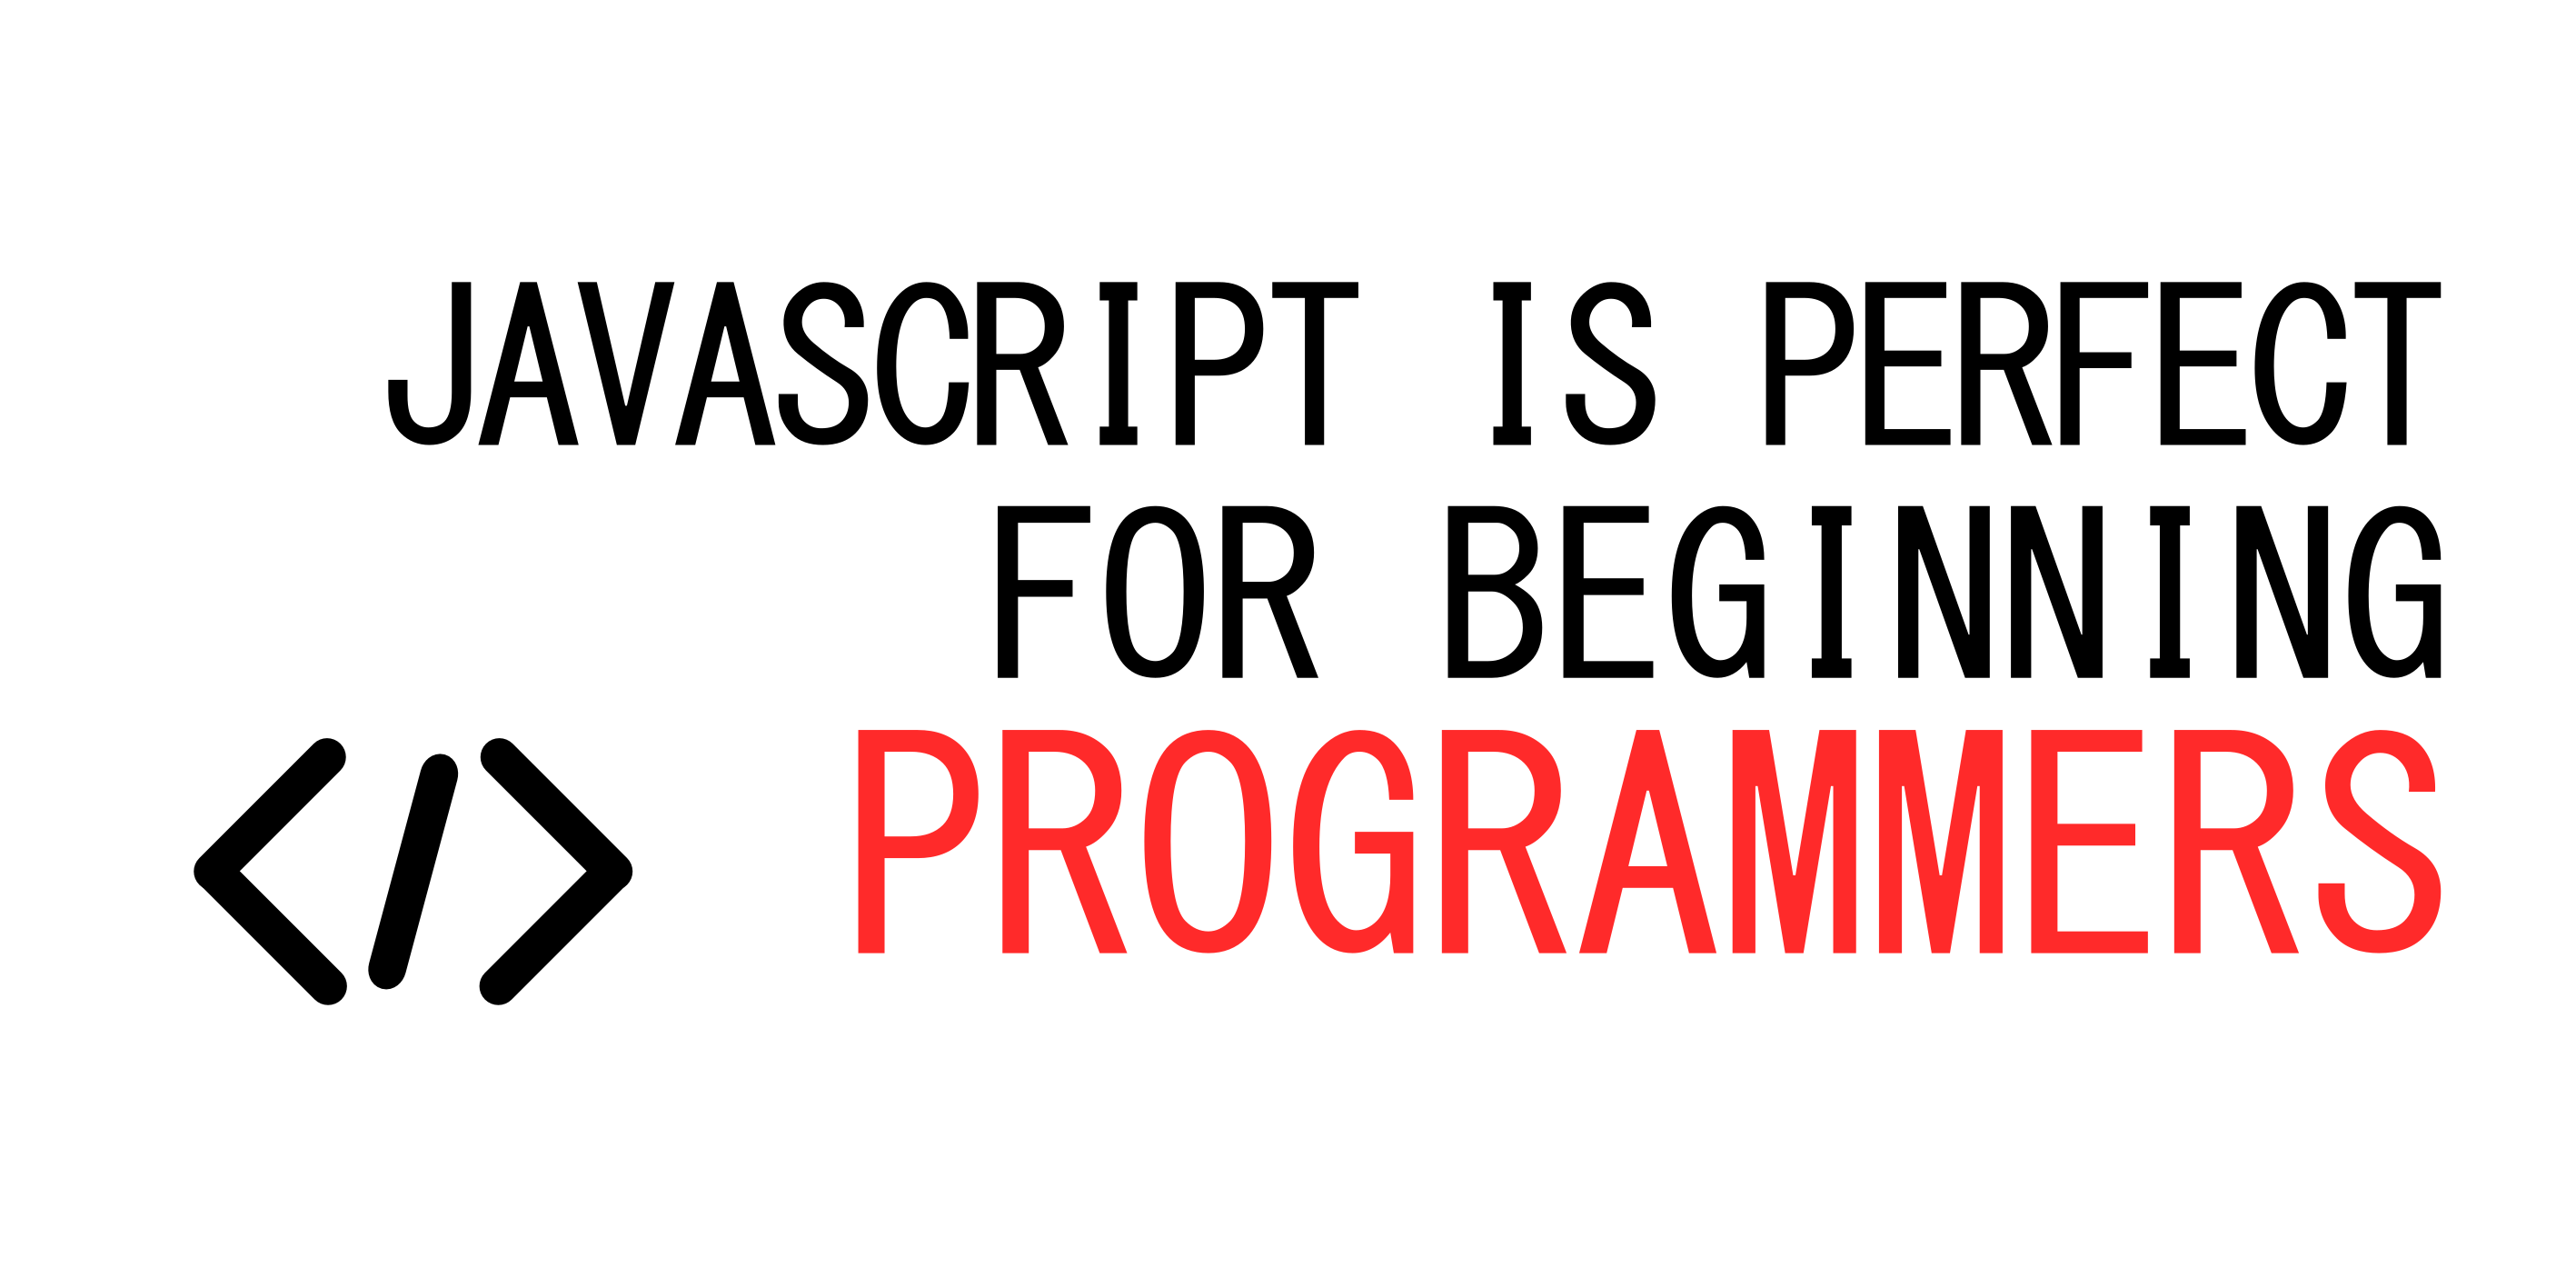 Javascript Is Perfect For Beginning Programmers